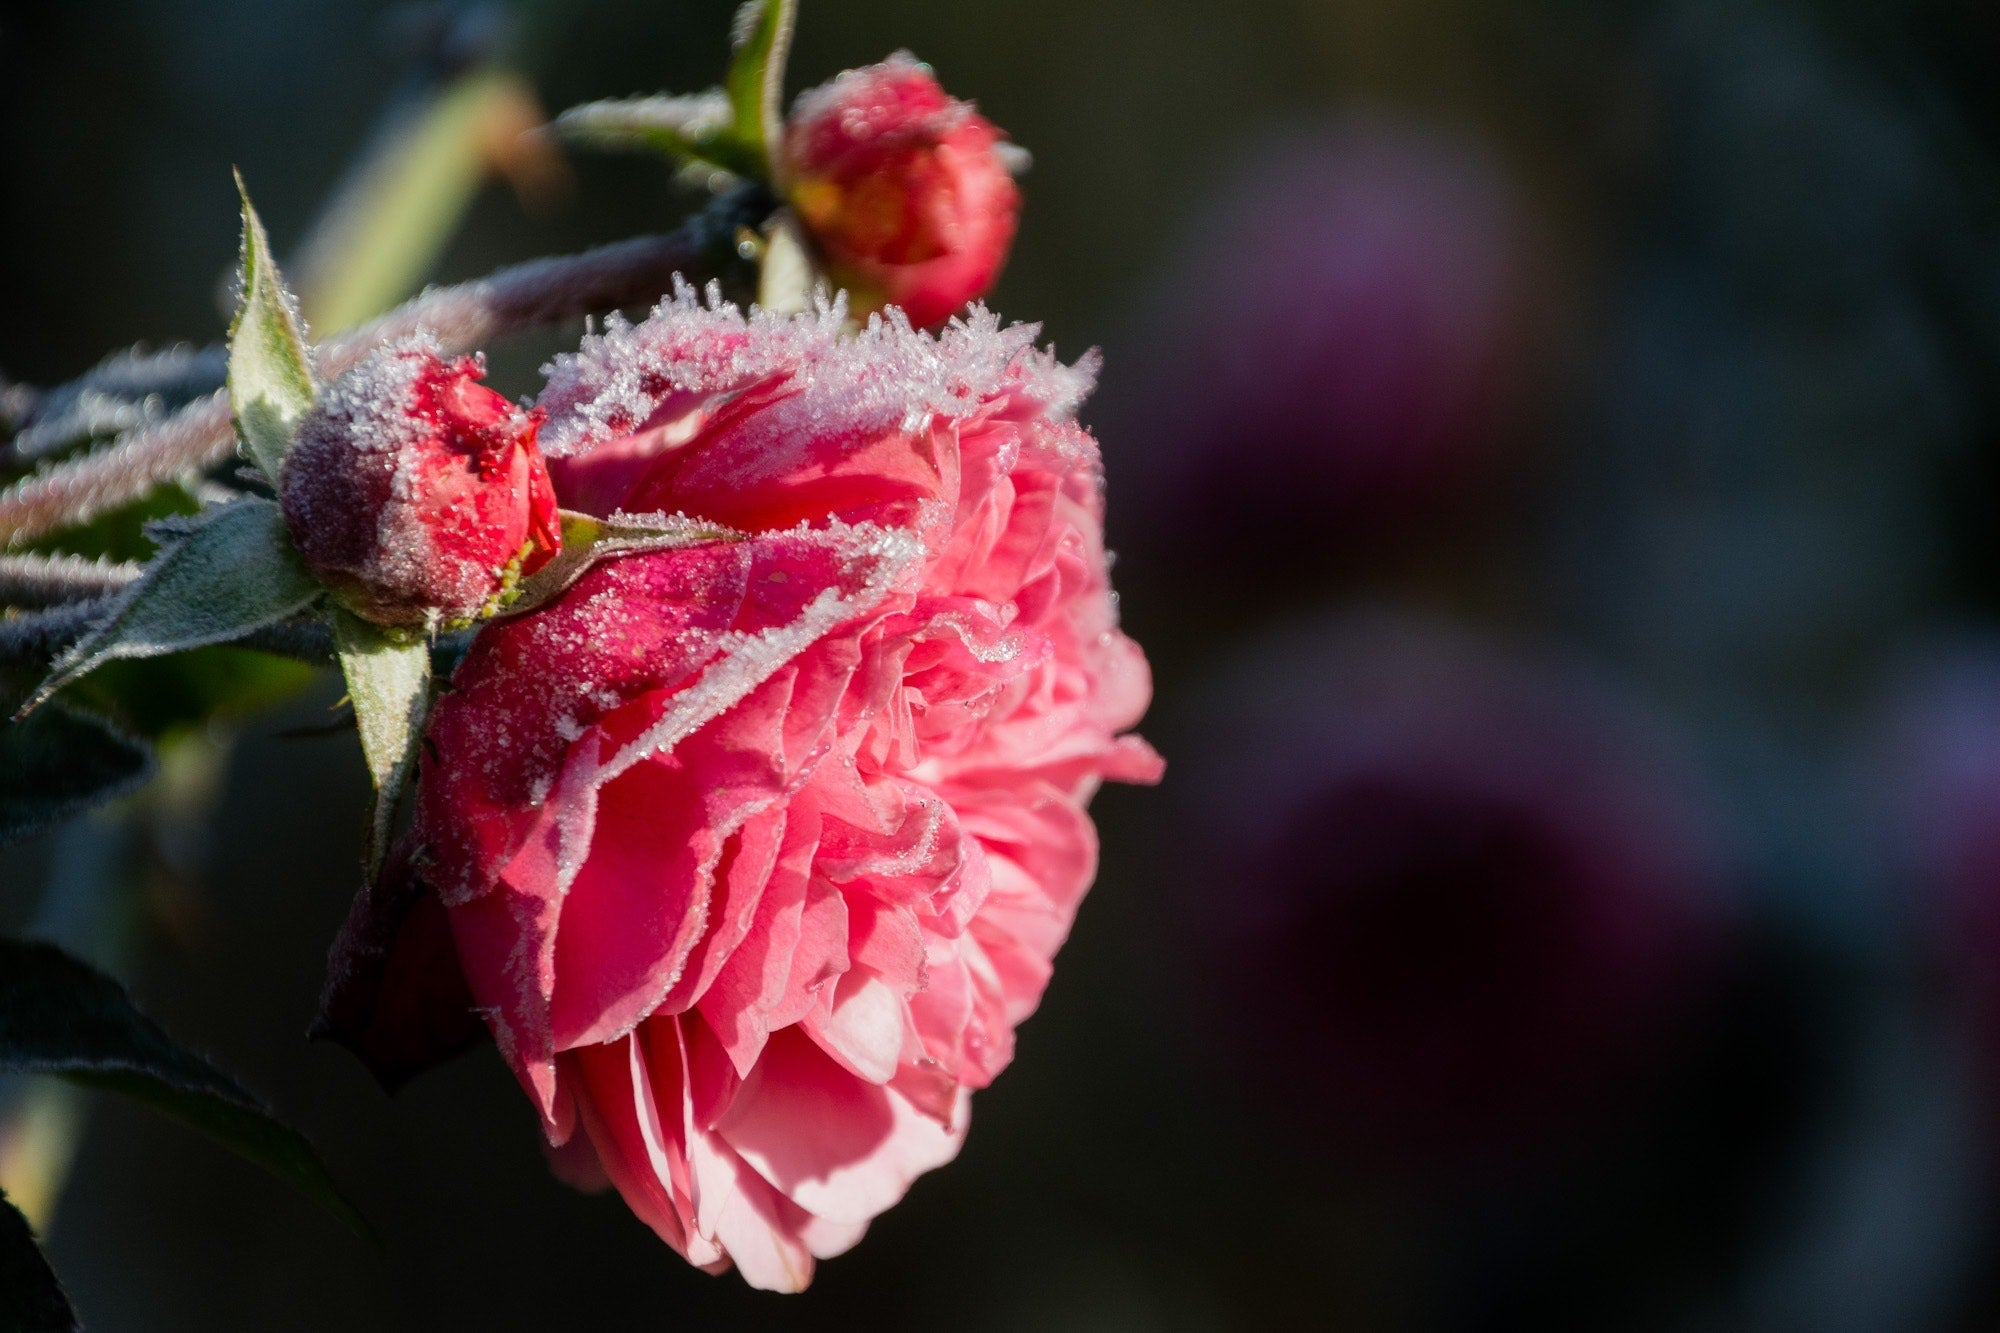 The Frozen Flower